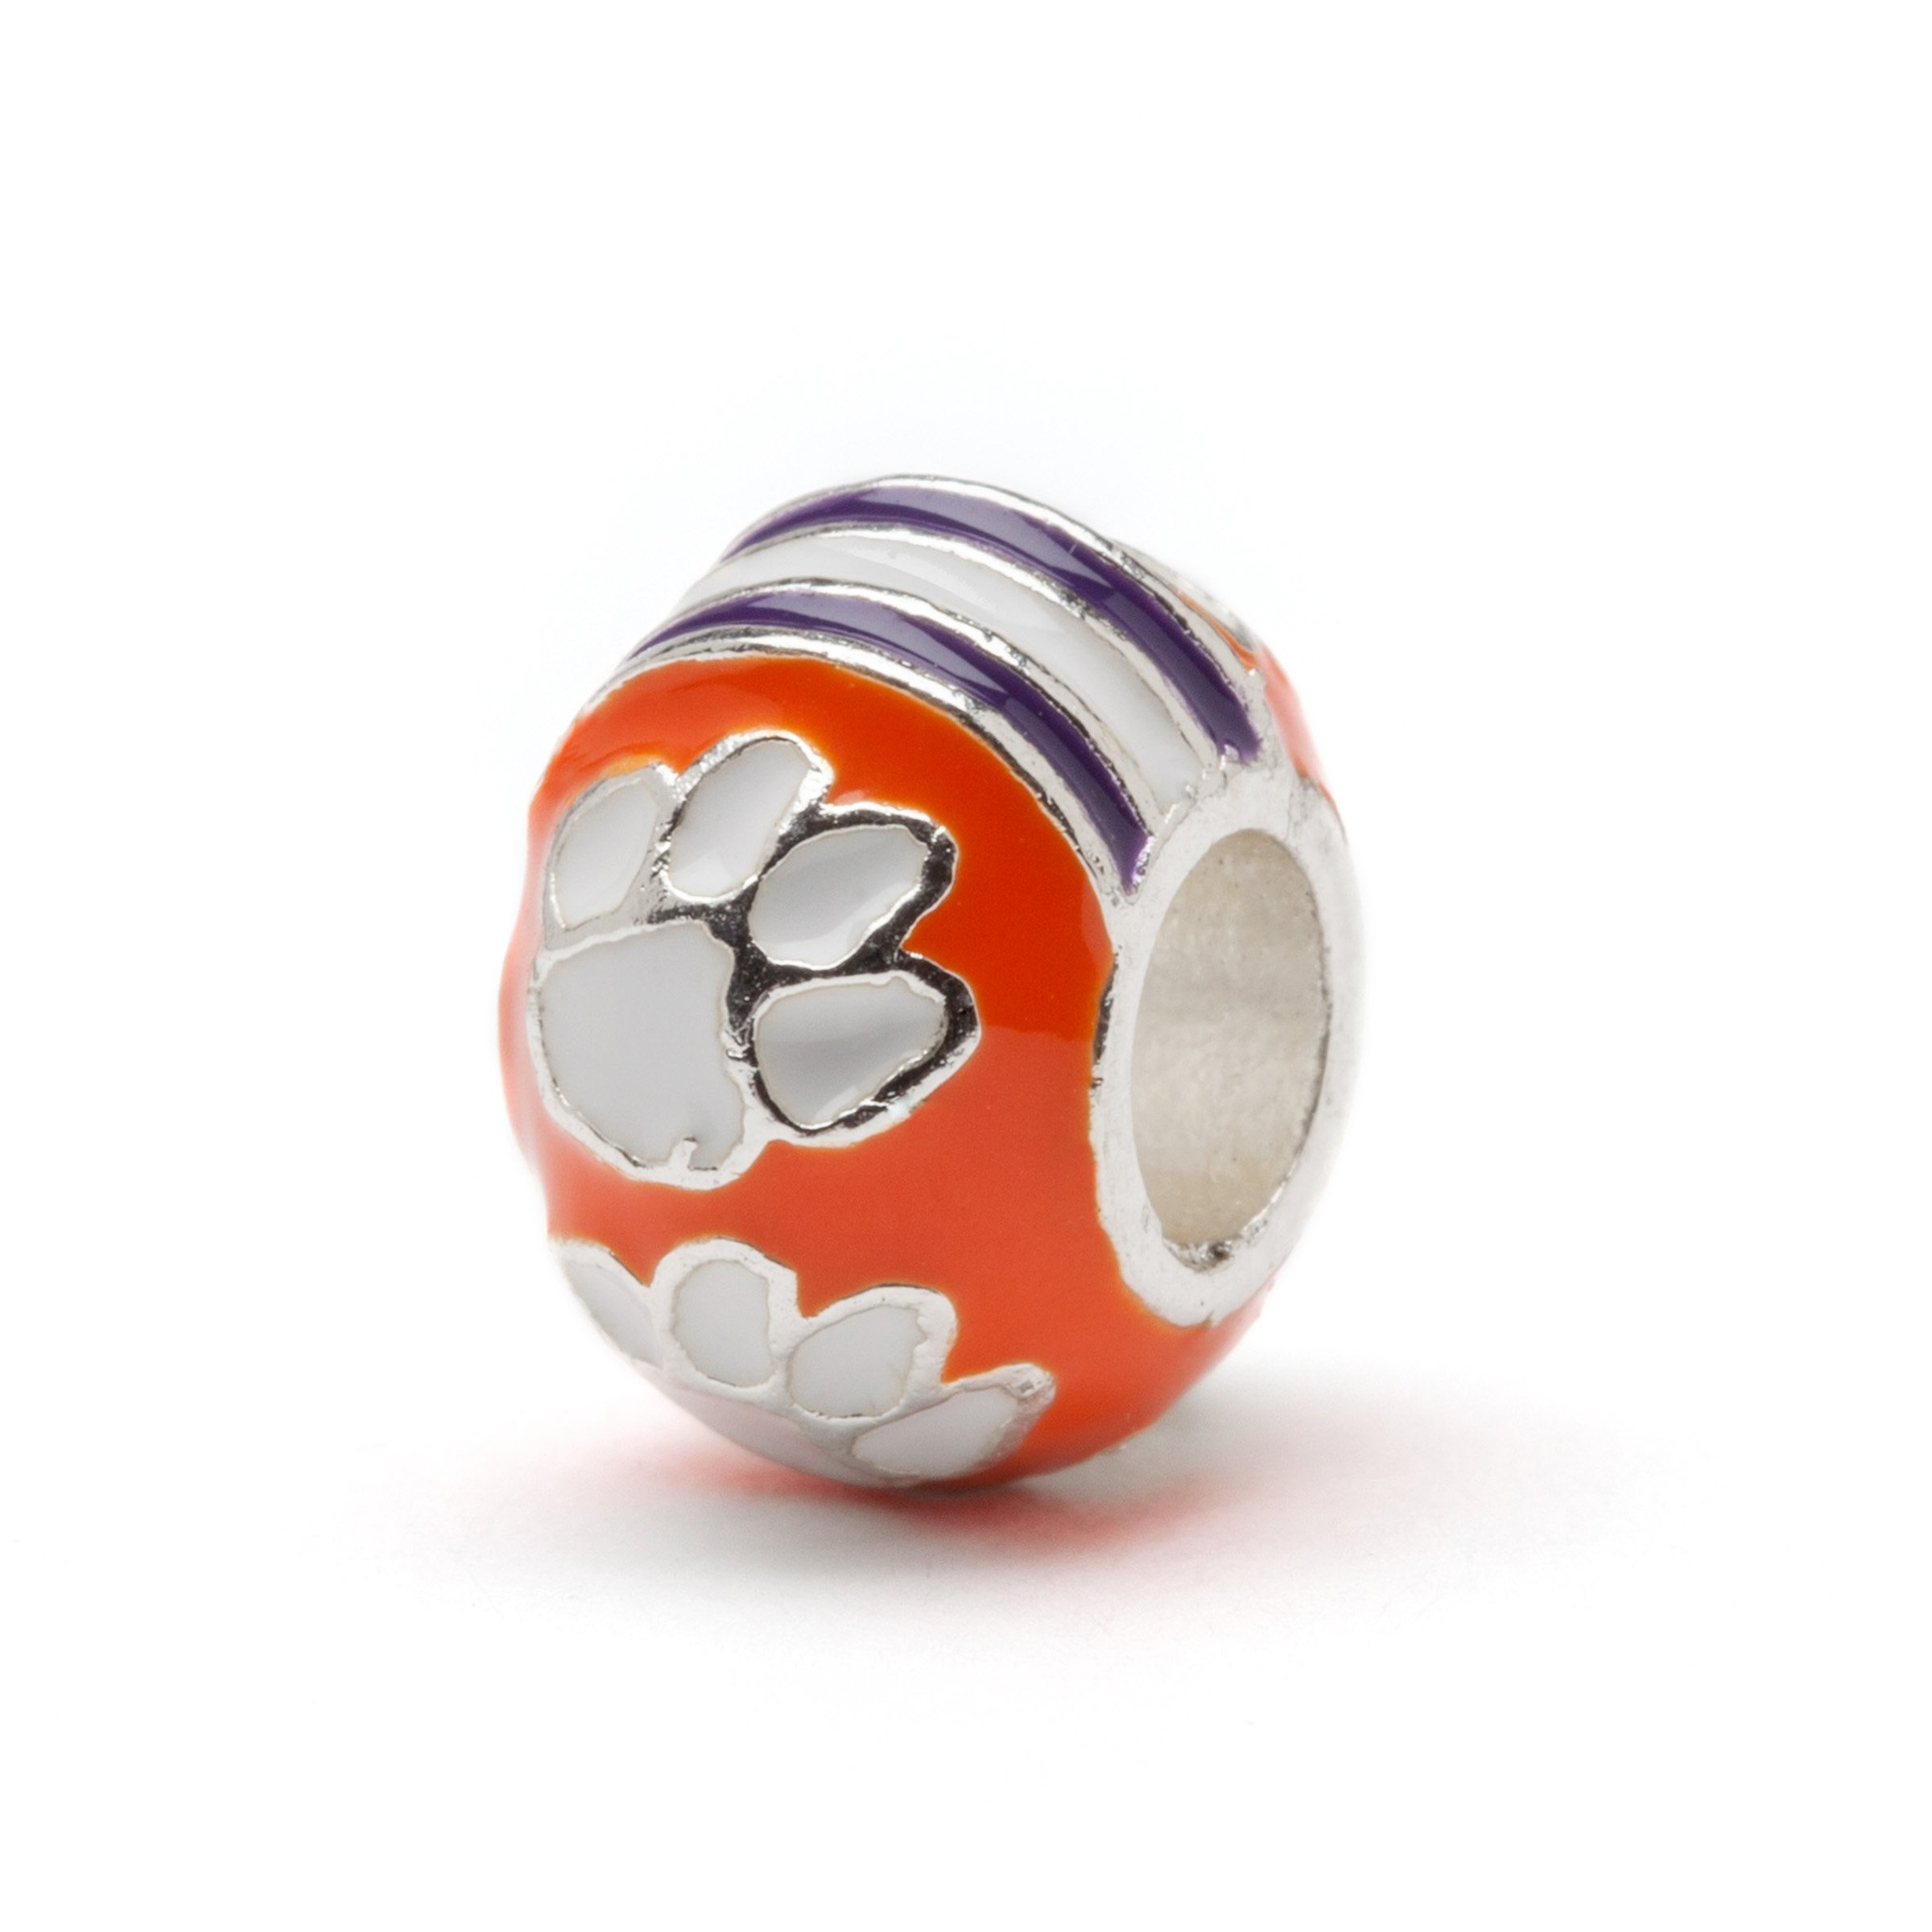 Clemson University Bead Charm | Clemson Orange Charm | Clemson Jewelry | Stainless Steel Clemson Gifts | Fits Most Popular Bead Charms